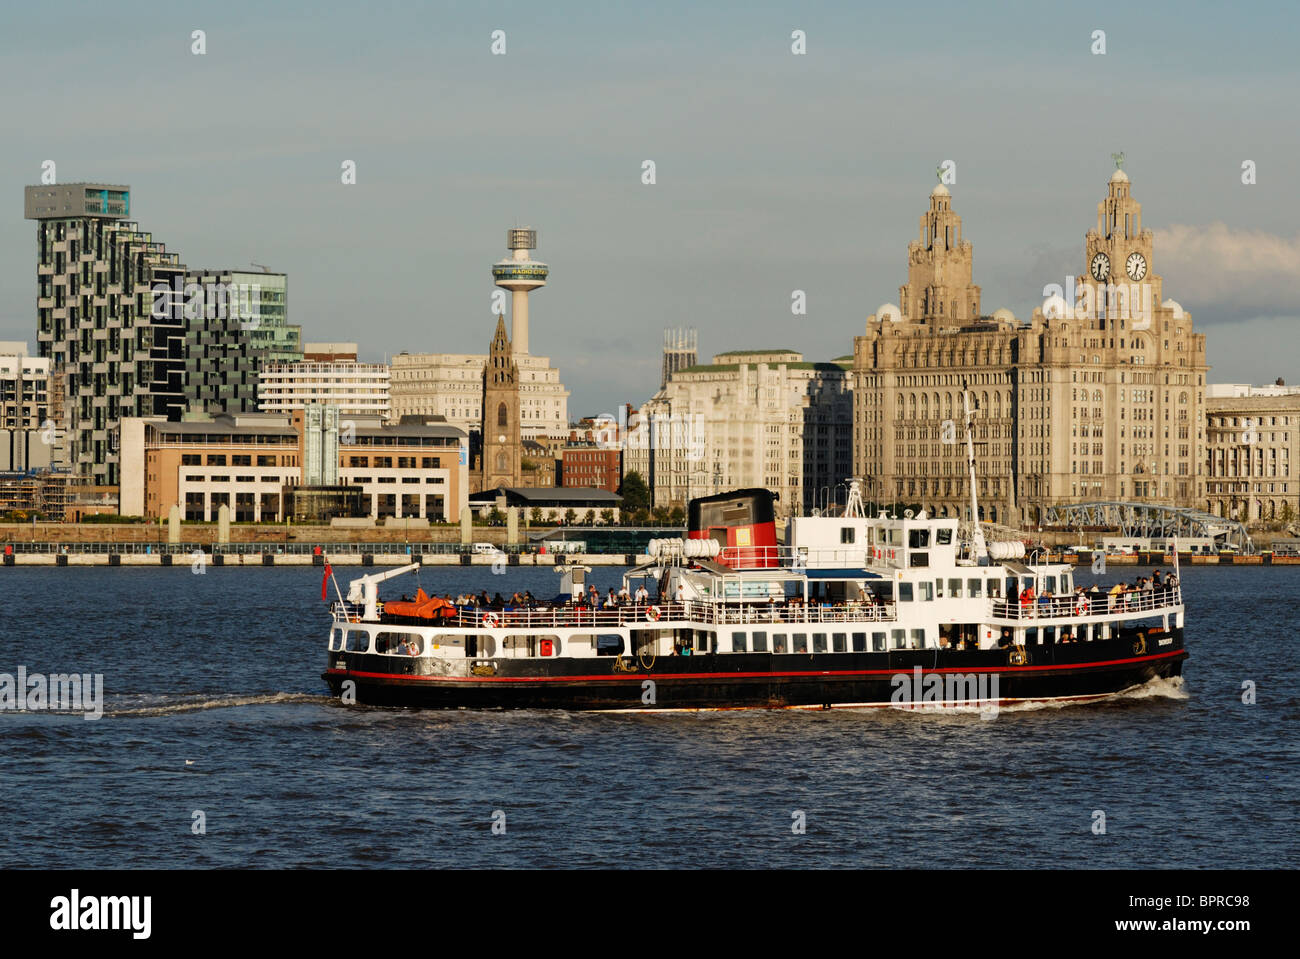 Ferry crossing the River Mersey in front of Pier Head. - Stock Image